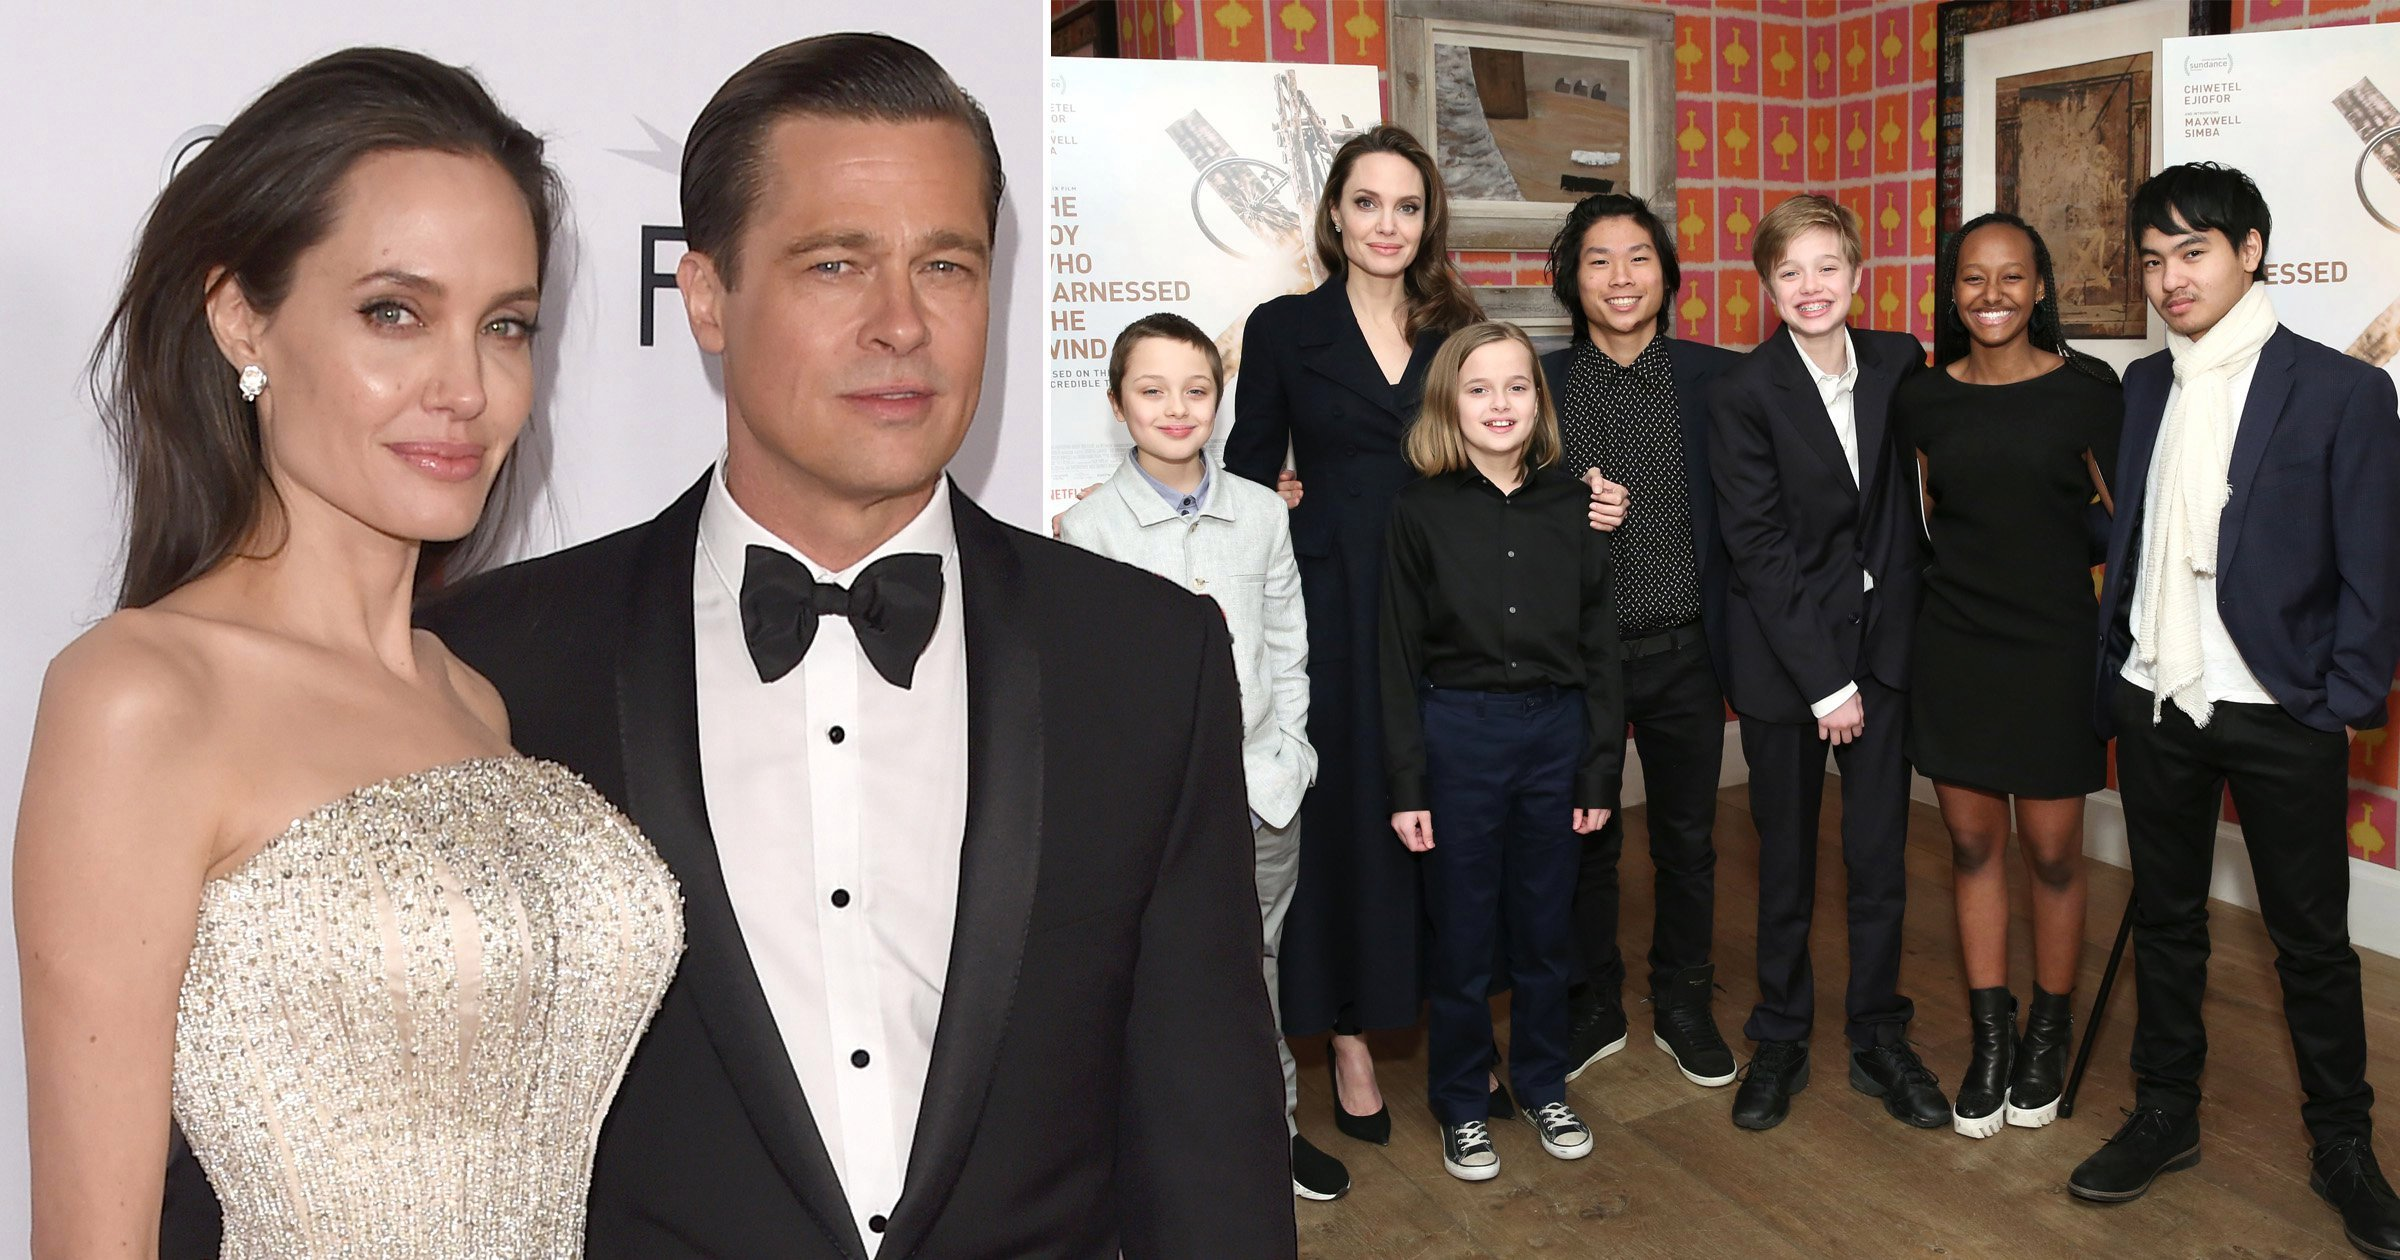 Brad Pitt and Angelina Jolie are Spending Time together for the Kids